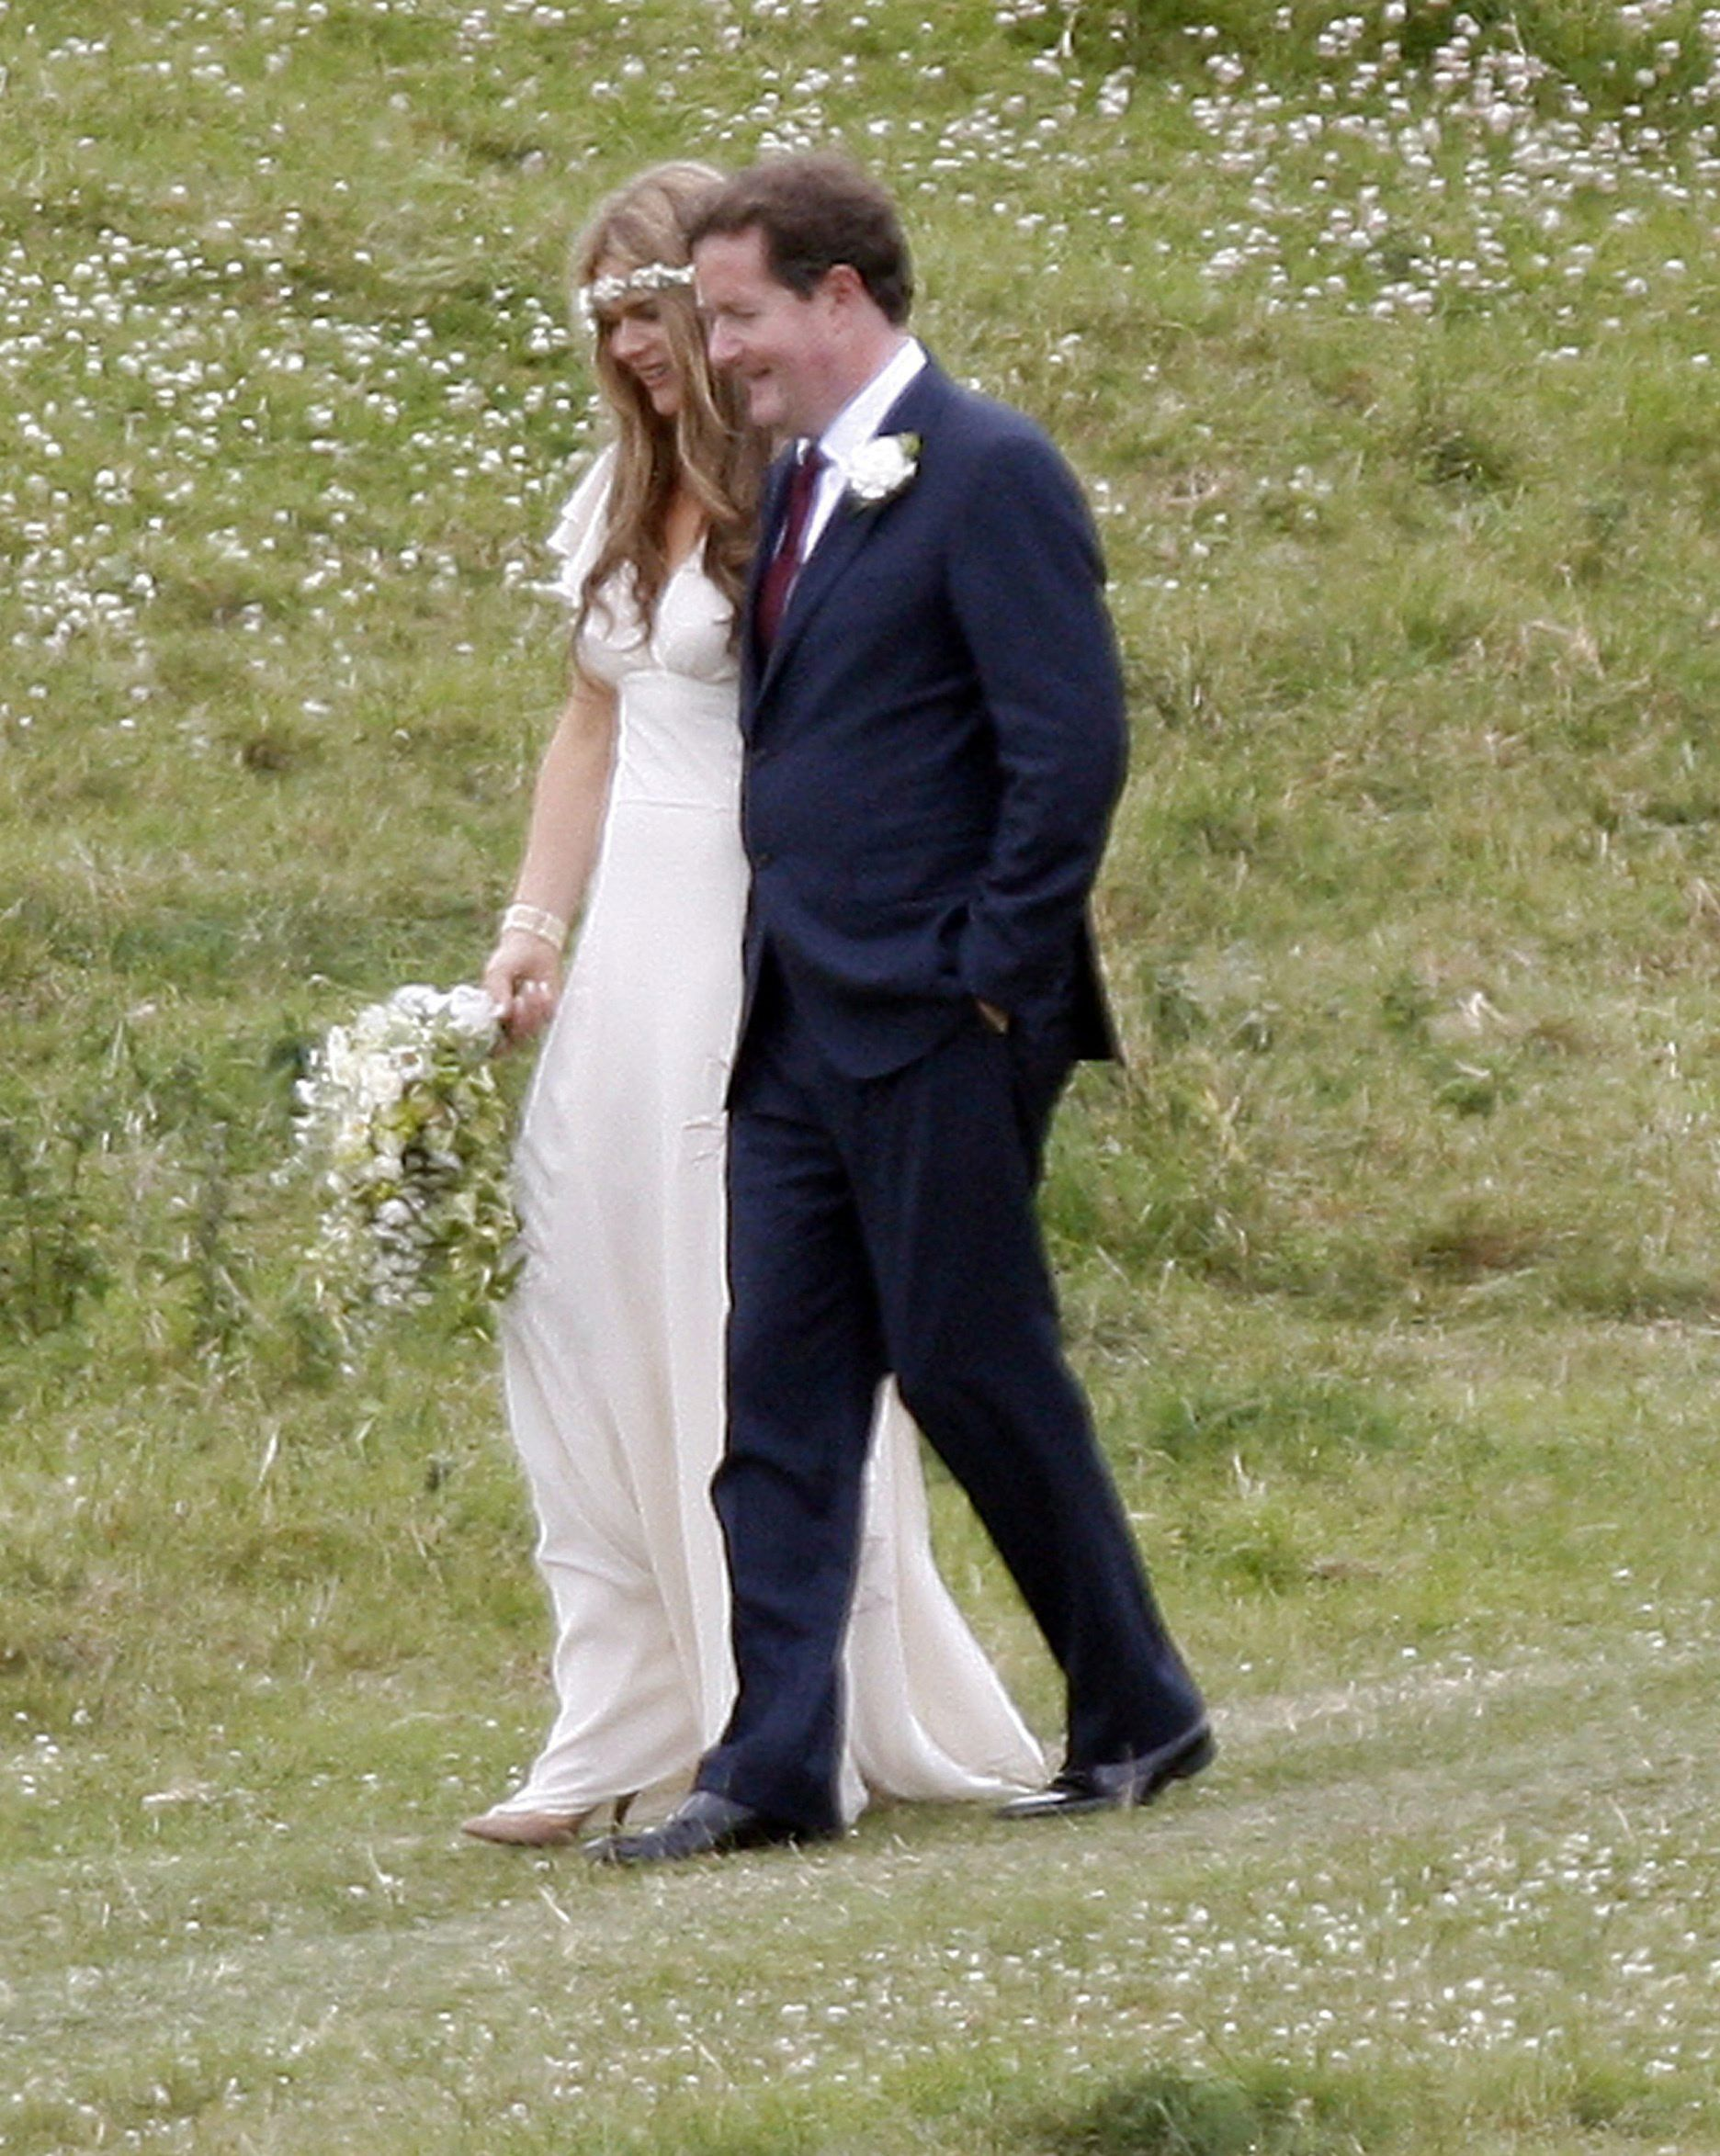 Piers Morgan And Celia Walden Celebrity Wedding Photos Celebrity Weddings Celebrities